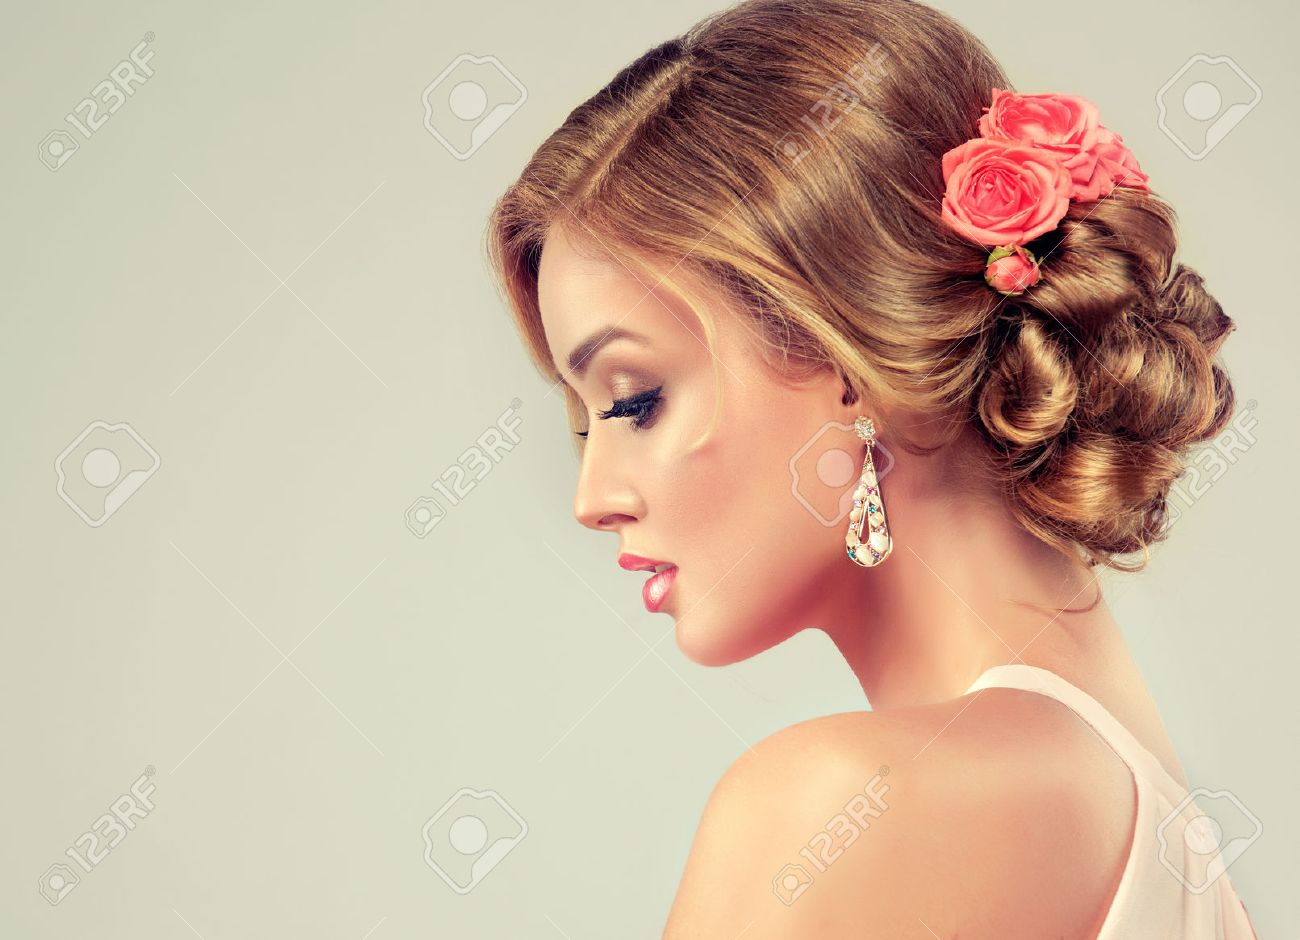 Beautiful Woman With Colourful Makeup And Fashion Wedding Hairstyle